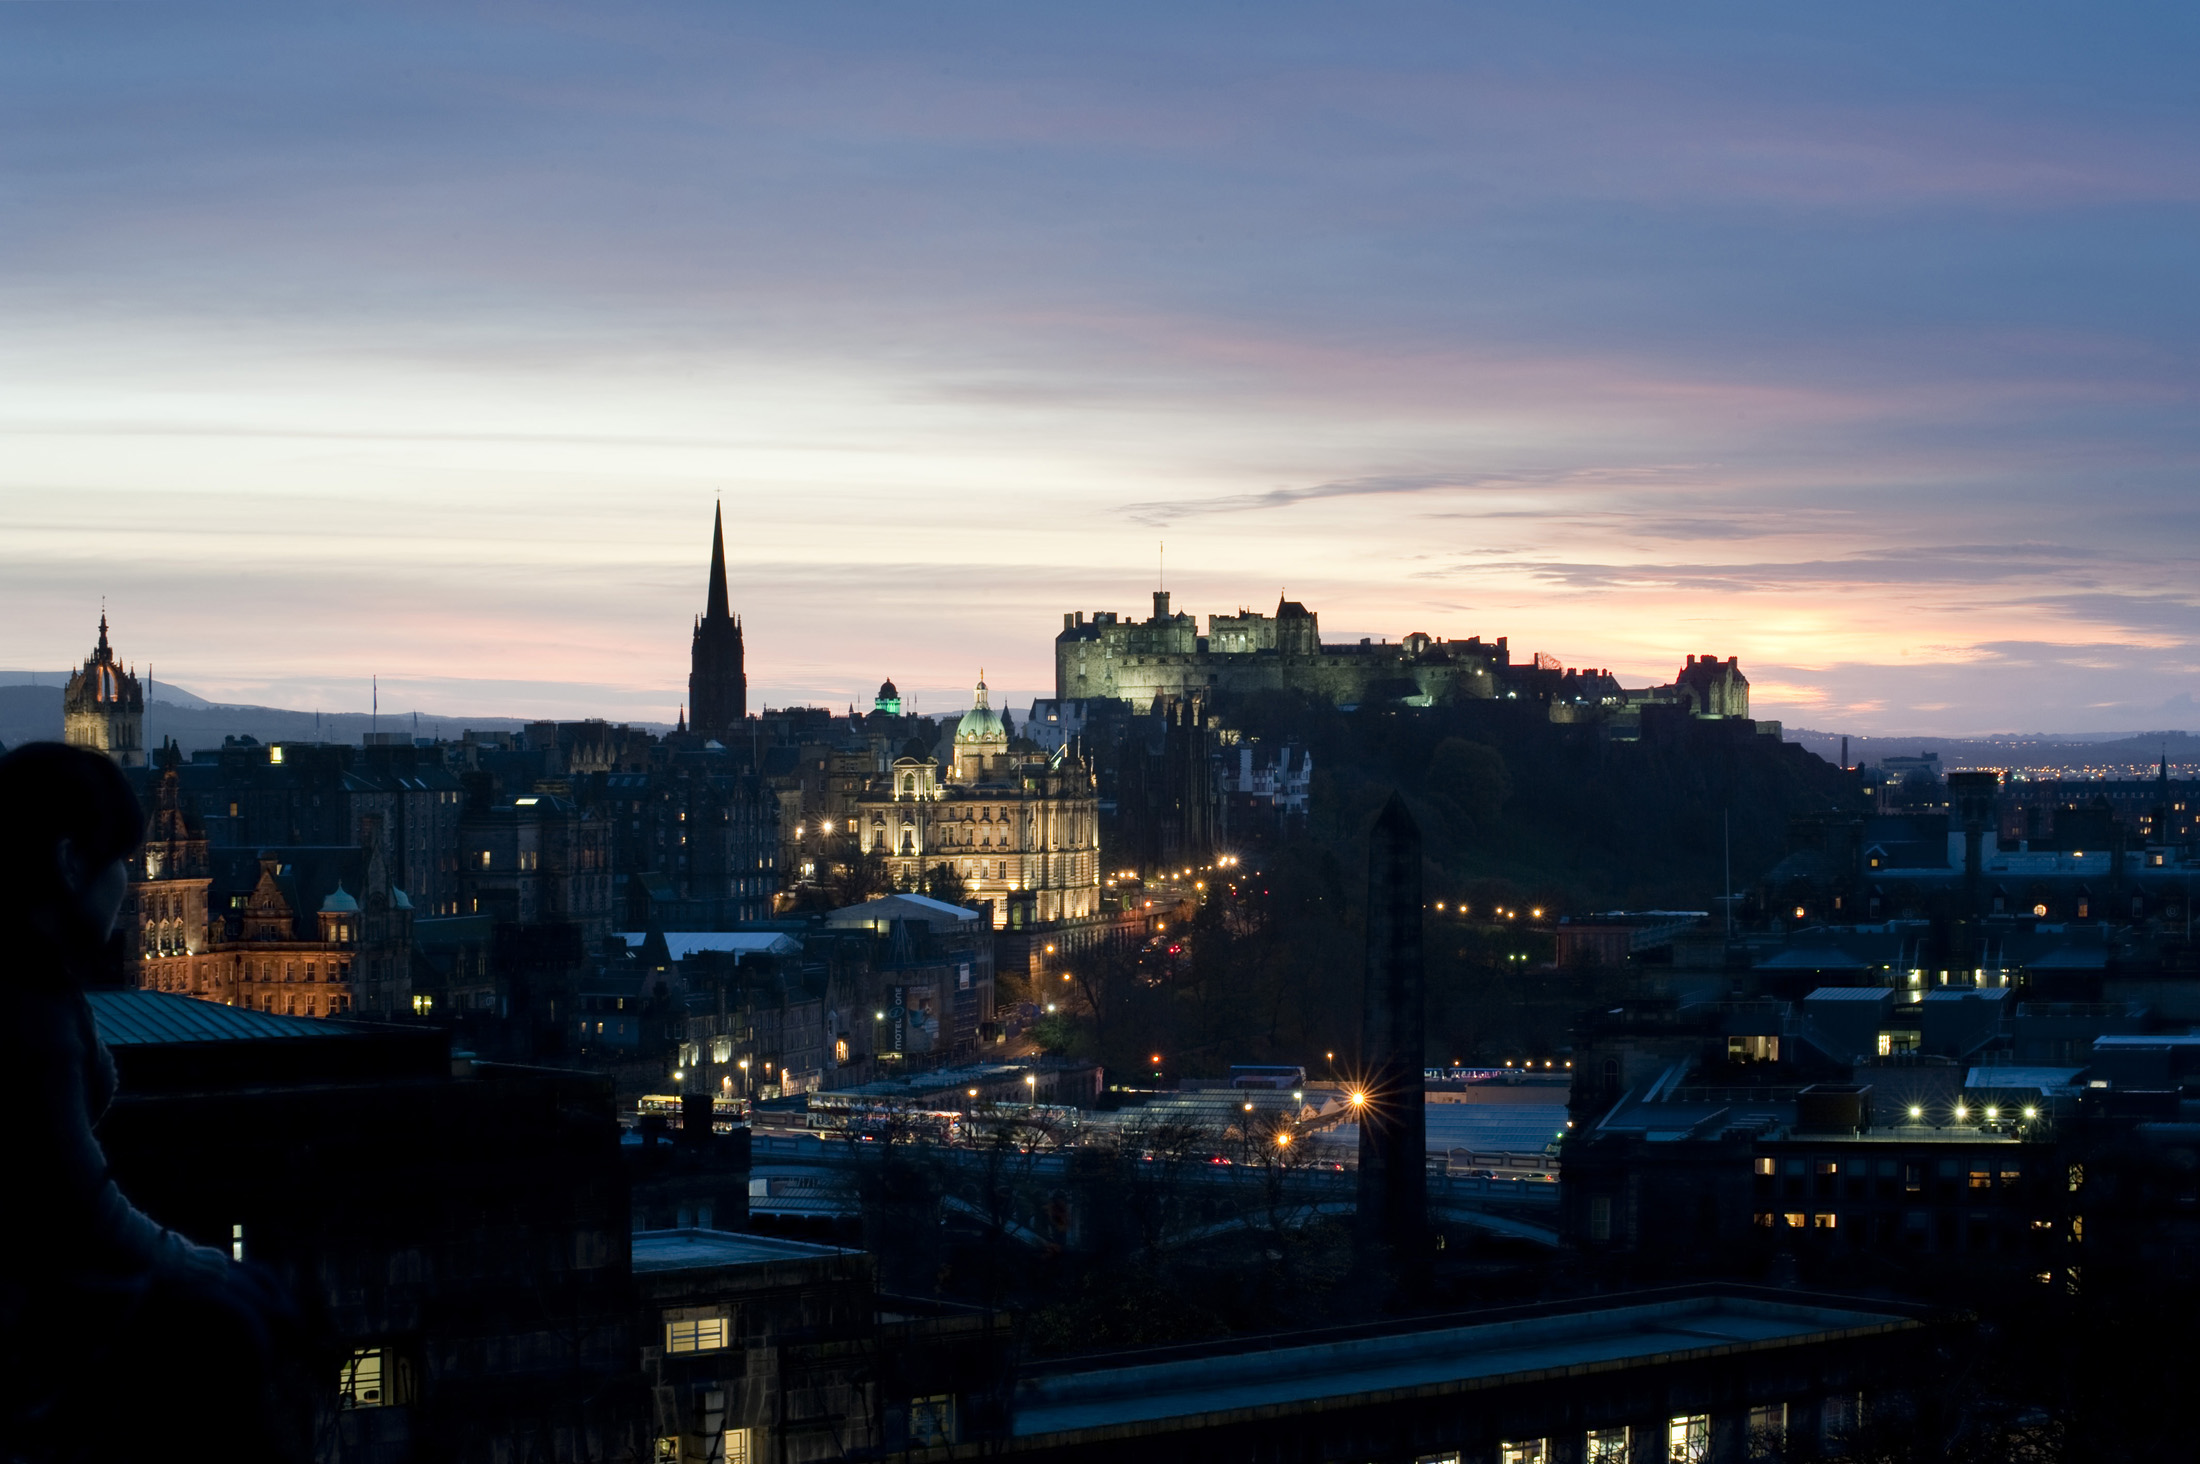 City of Edinburgh at sunset looking towards the Edinburgh Rock and Castle